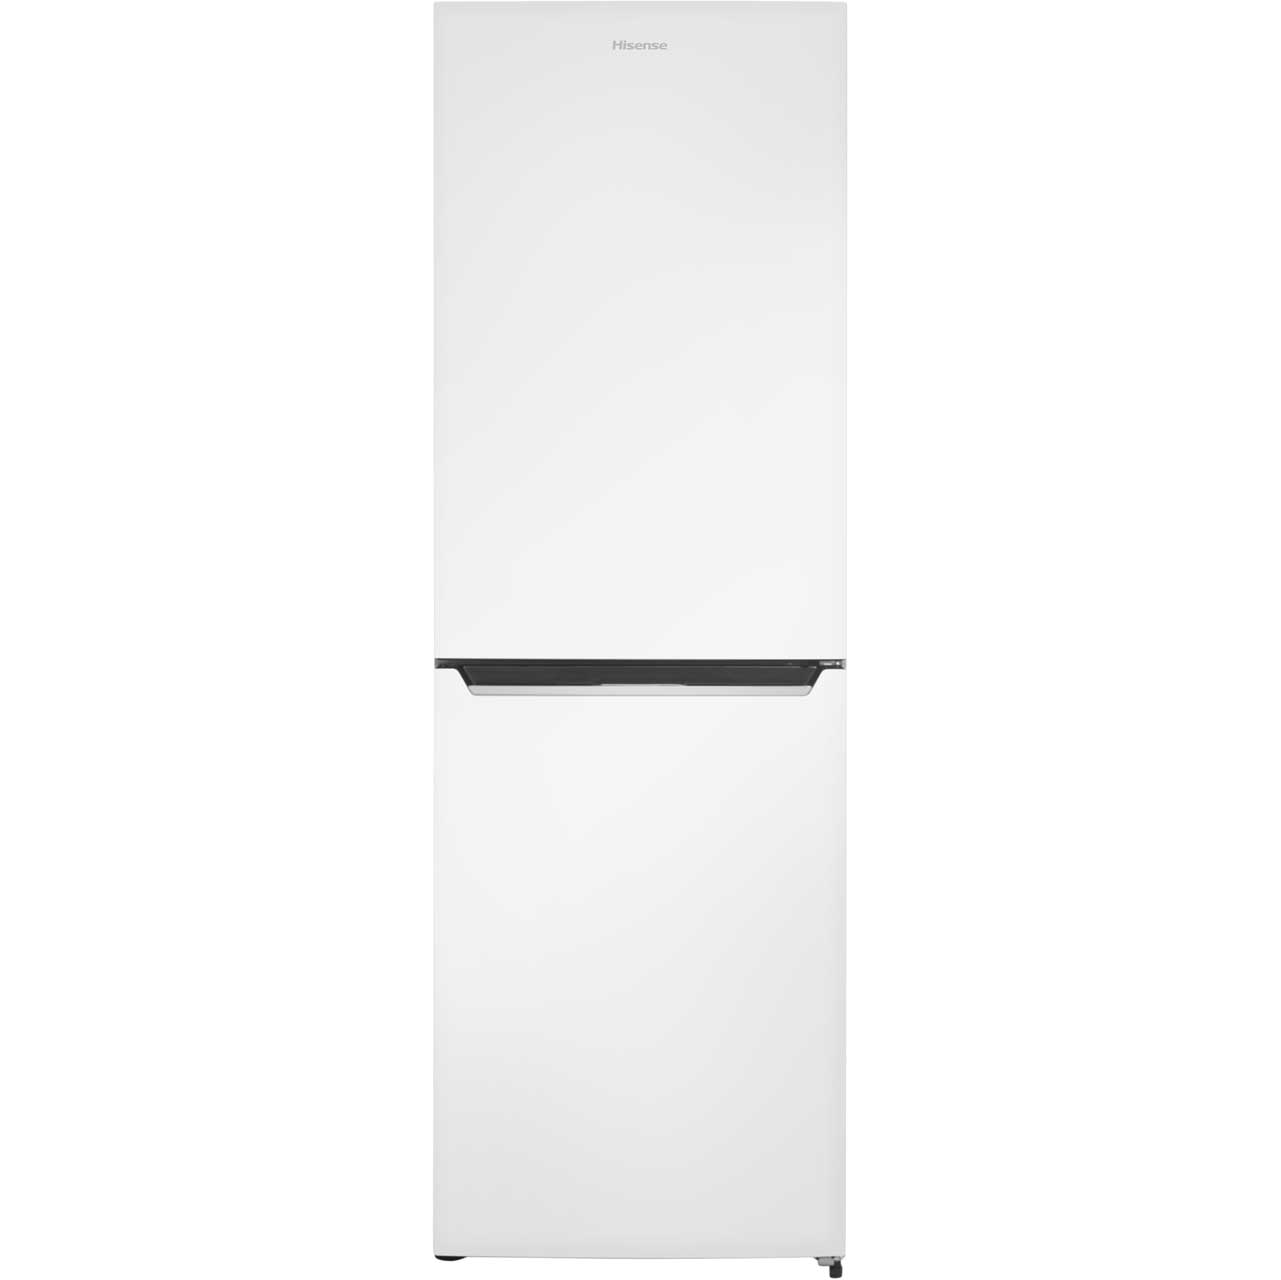 Hisense RB385N4EW1 Free Standing Fridge Freezer Frost Free in White